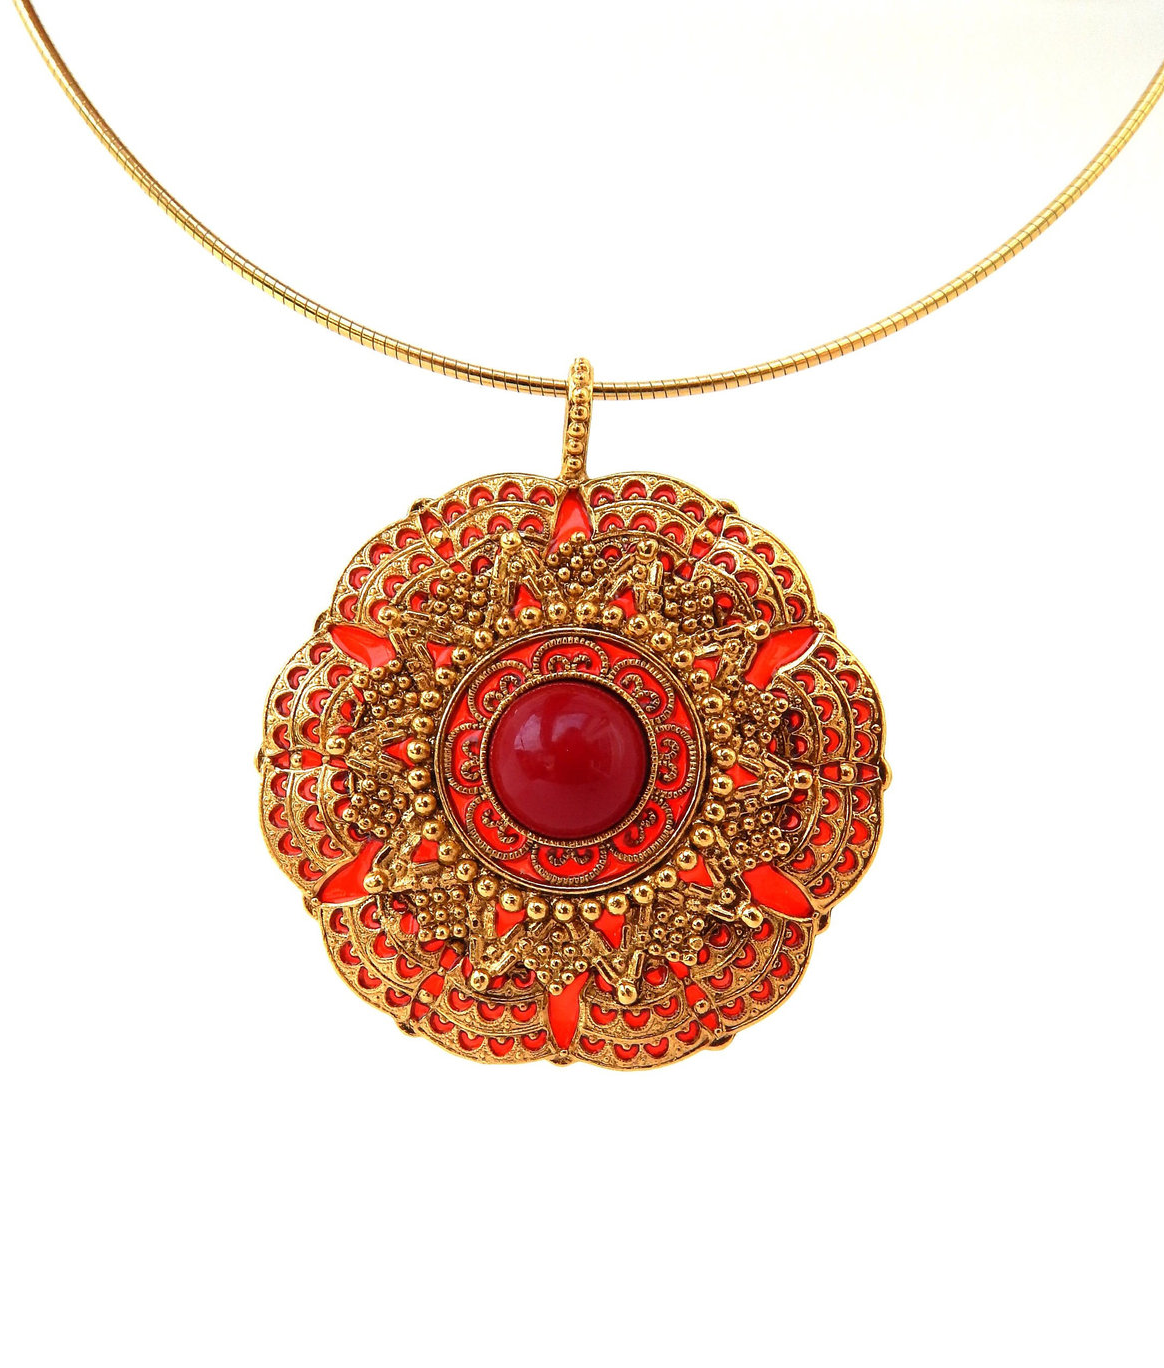 Primary image for JOAN RIVERS Necklace, Red and Gold Large Pendant Thin Collar Necklace Etruscan